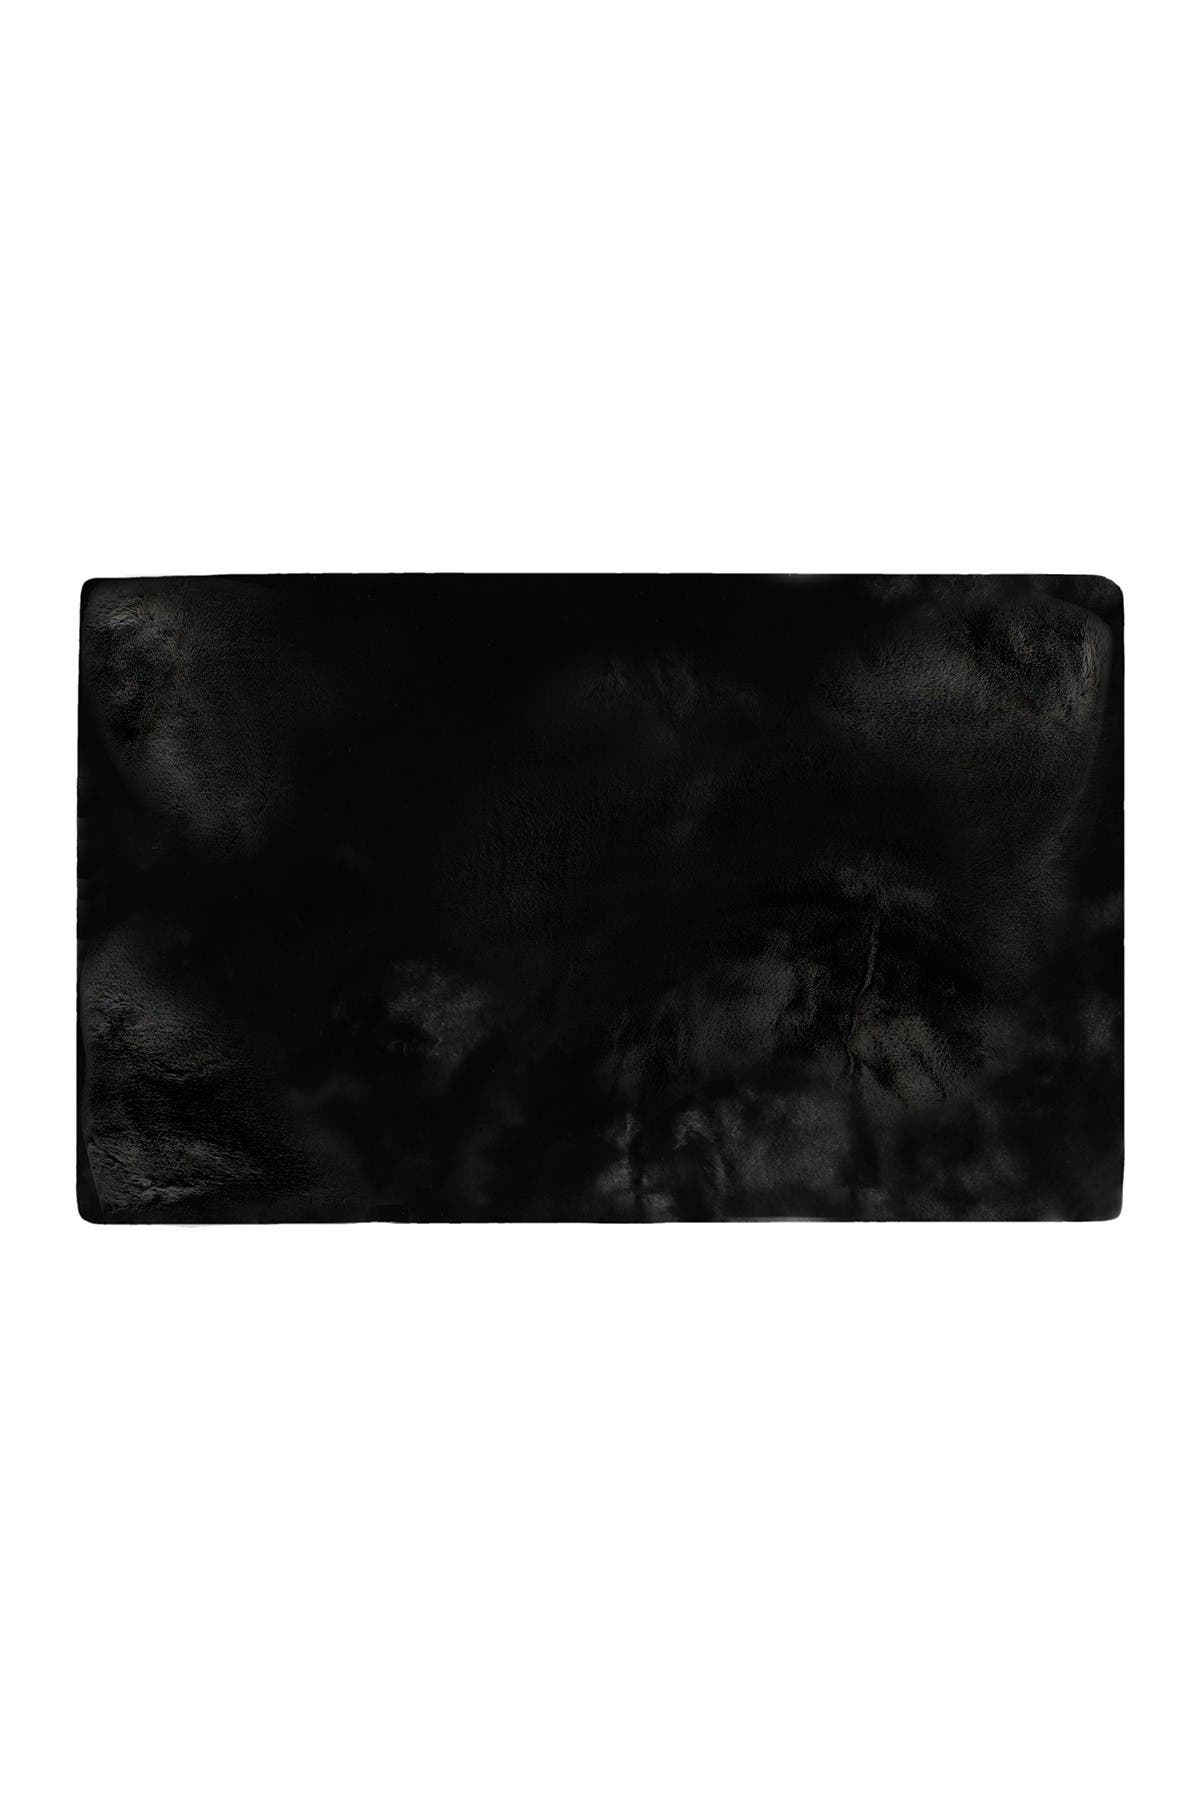 Image of LUXE Faux Fur Rectangular Throw 3' X 5' - Black